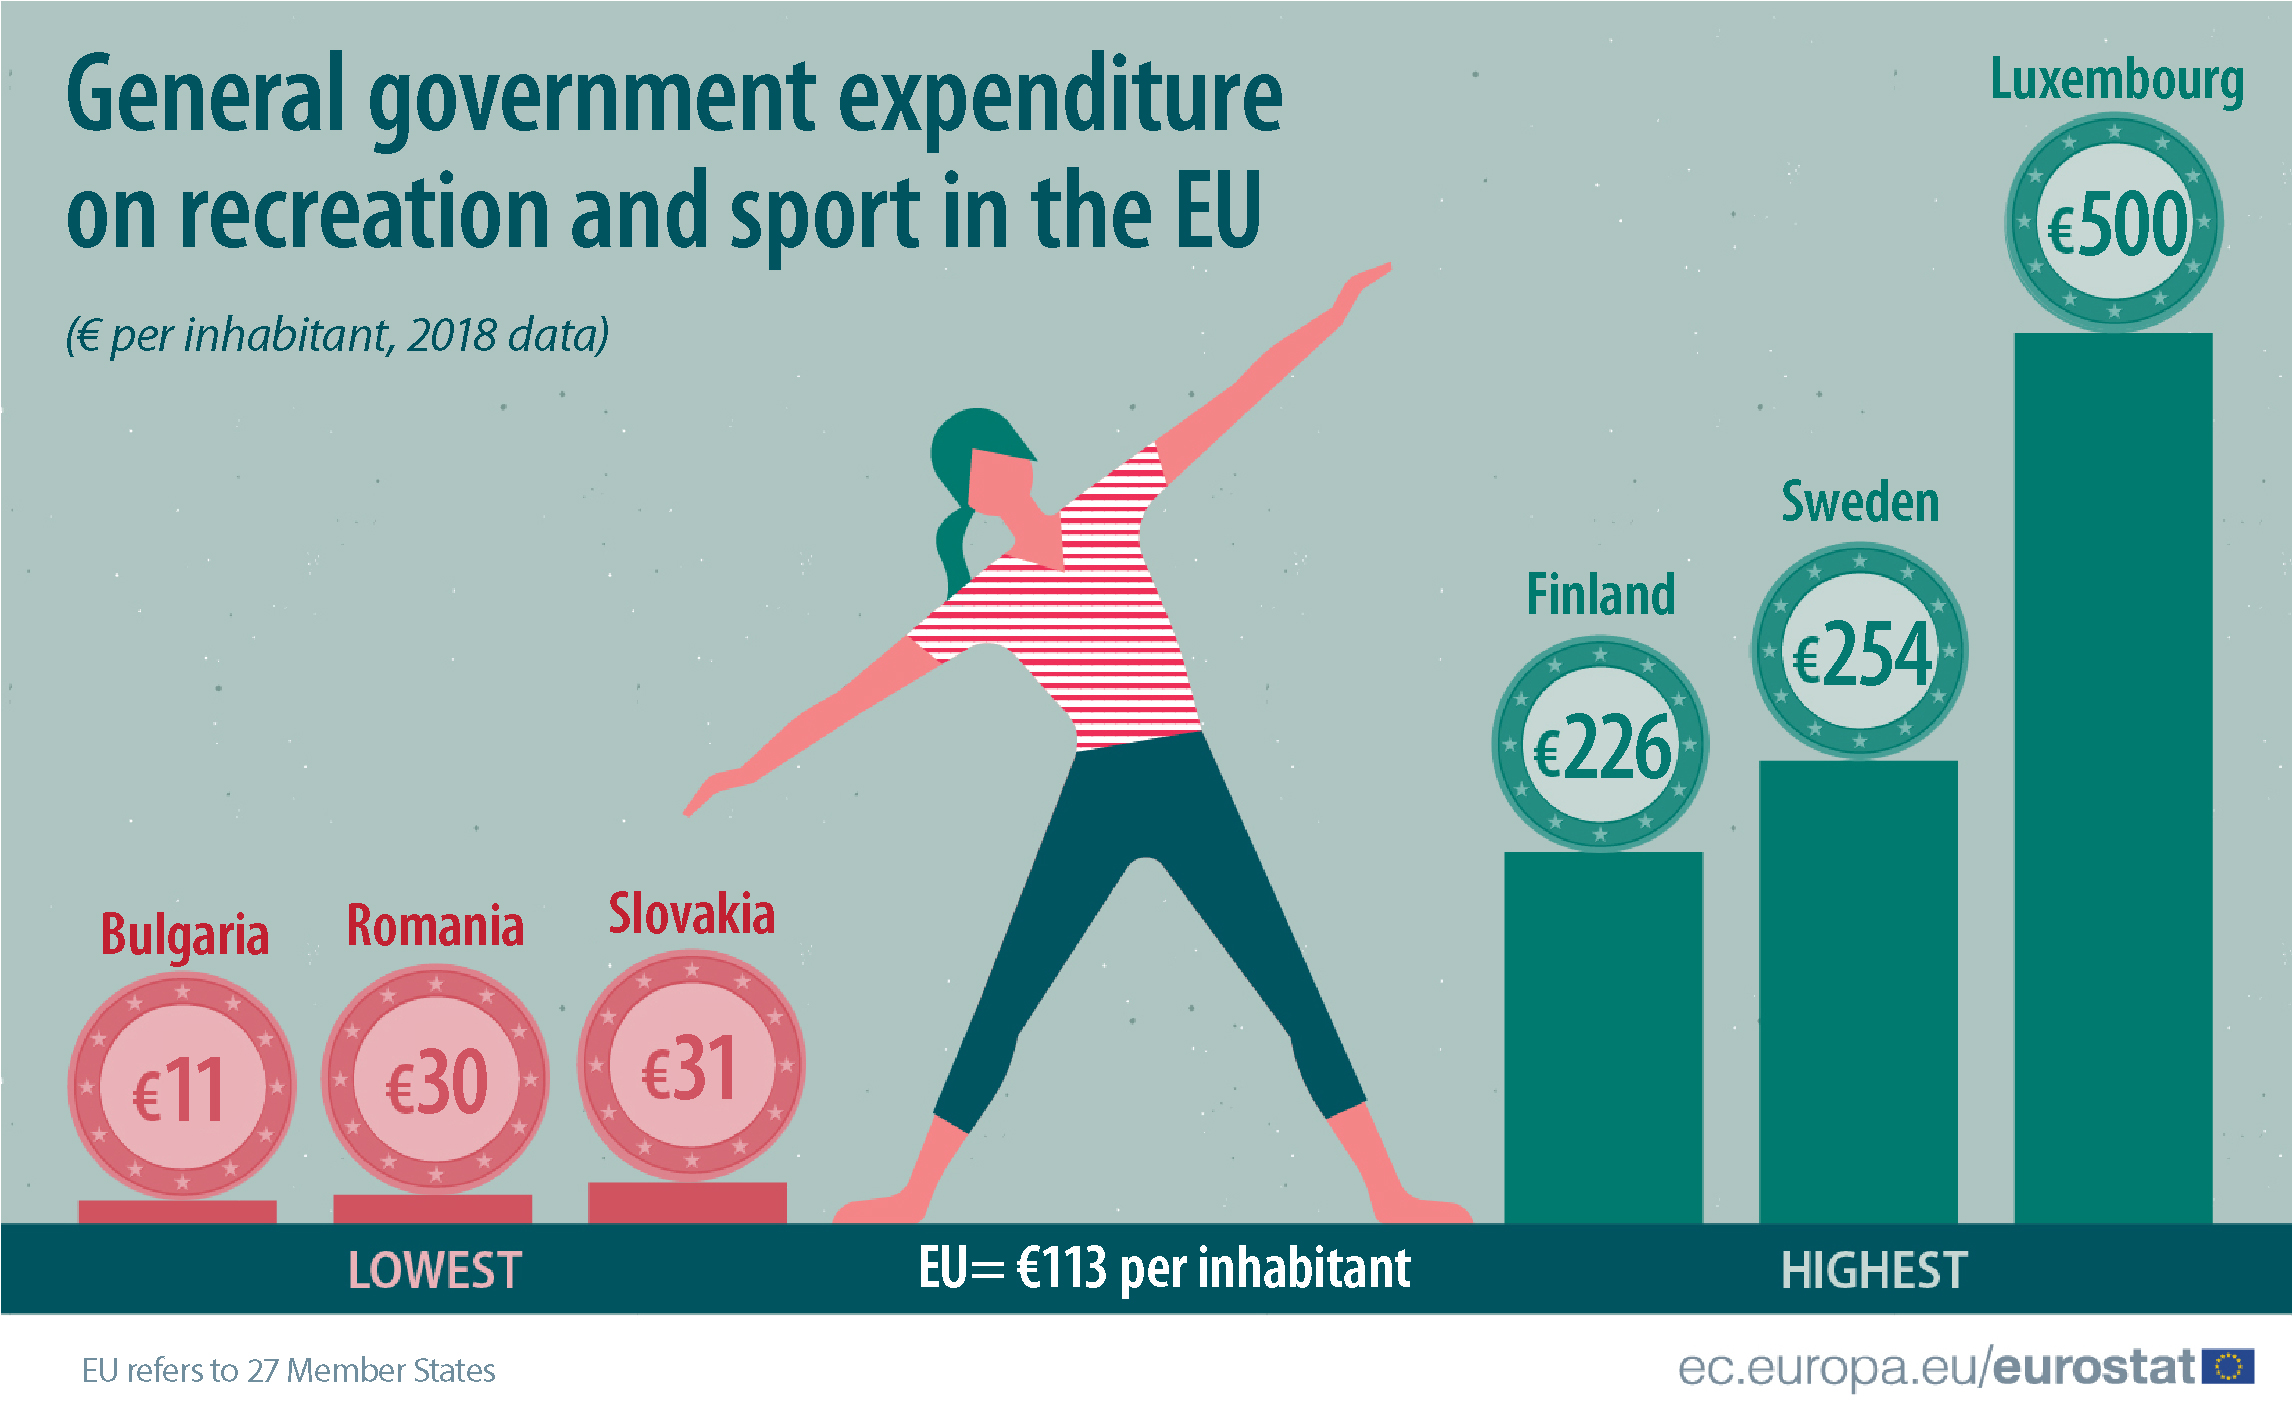 General government expenditure on recreation and sport in the EU, 2018